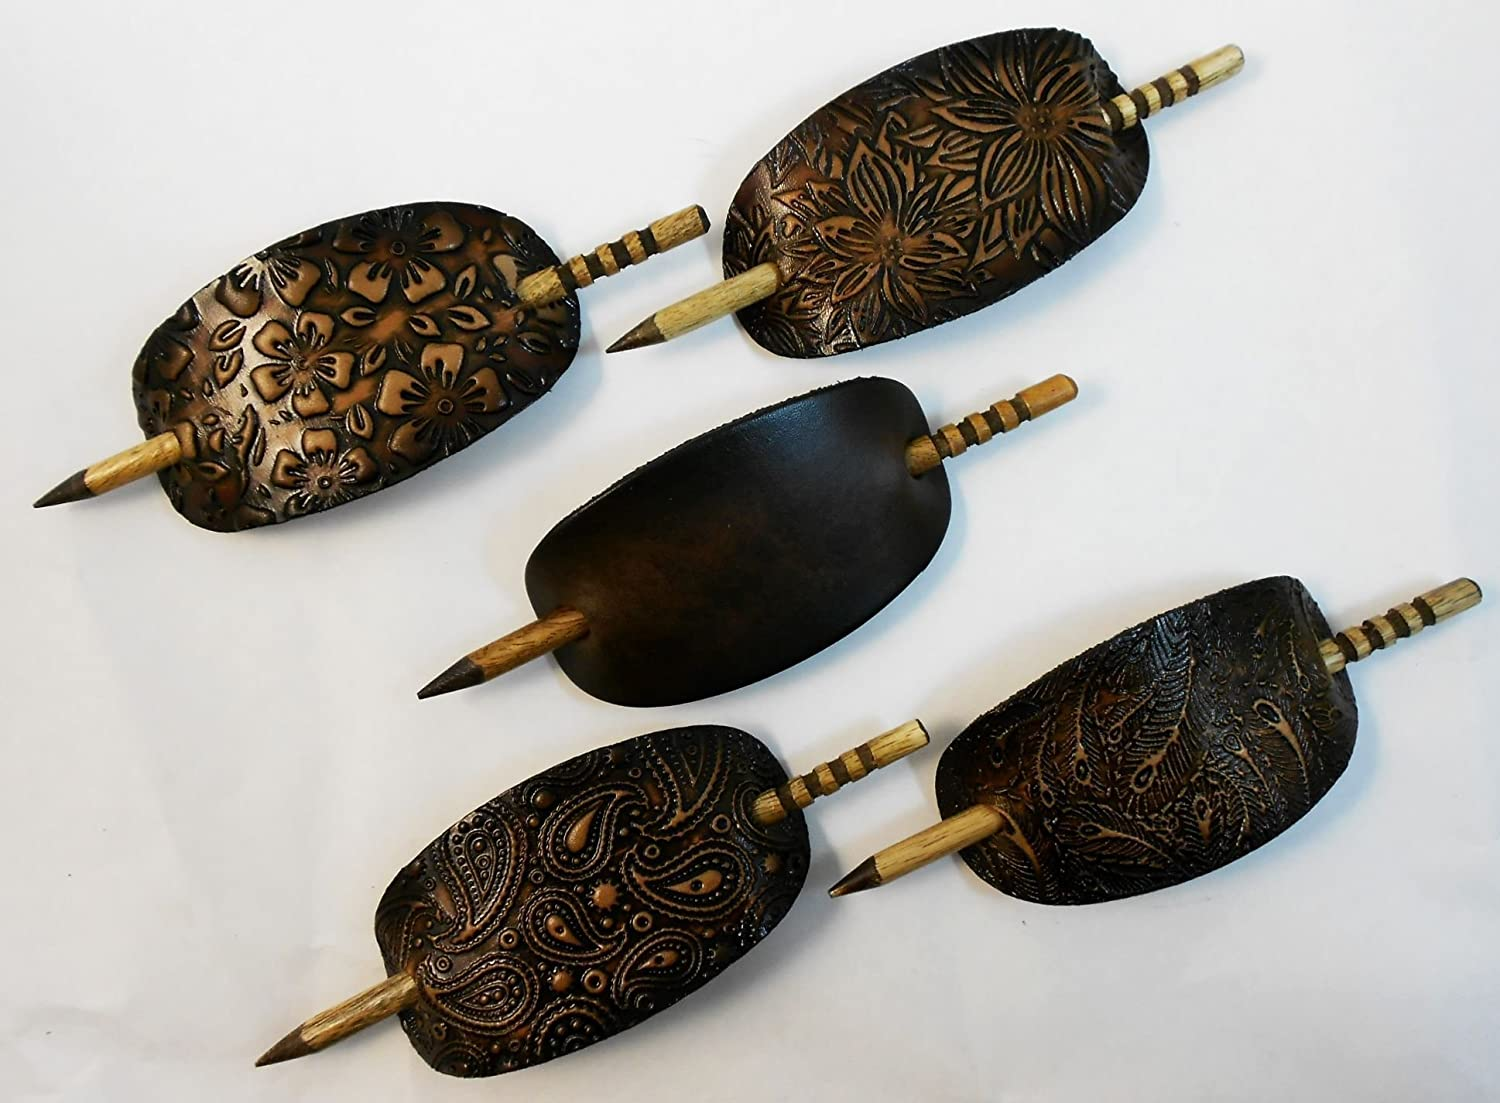 2 Large Leather Hair Barrettes w Sticks, Oval Shape Ponytail Holders, Choice of Design